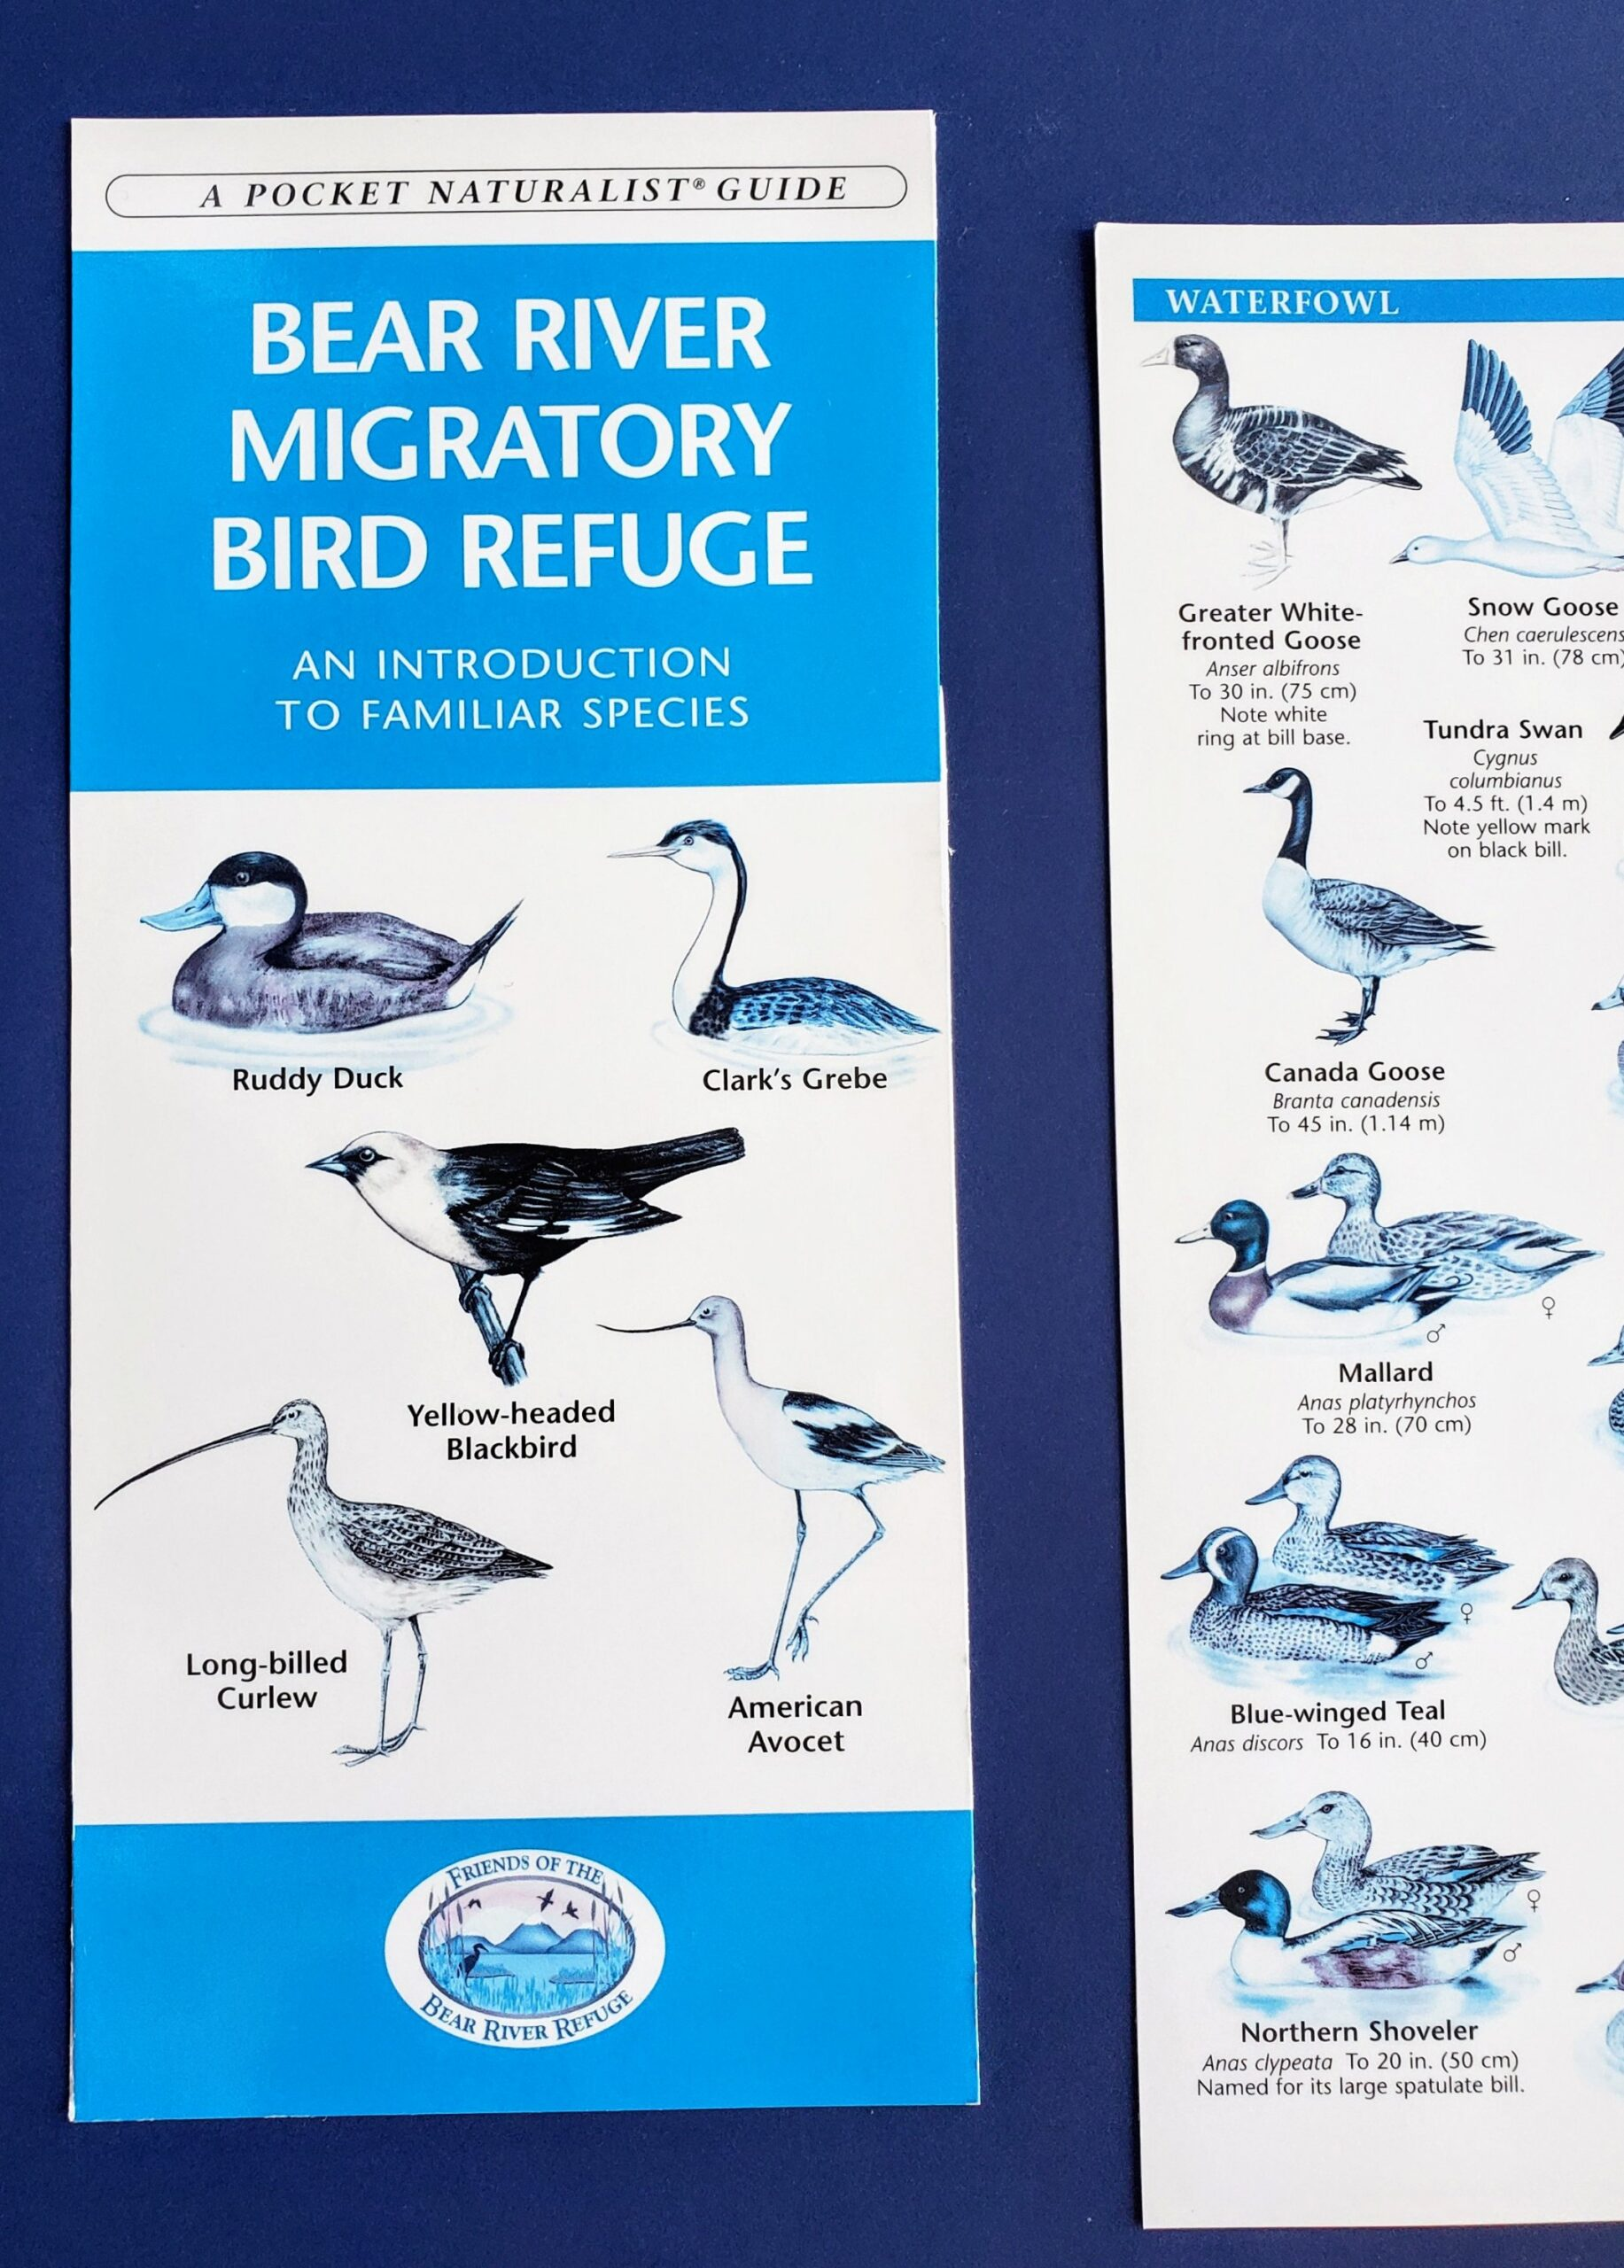 Birding Brochure from Bear River Migratory Bird Refuge